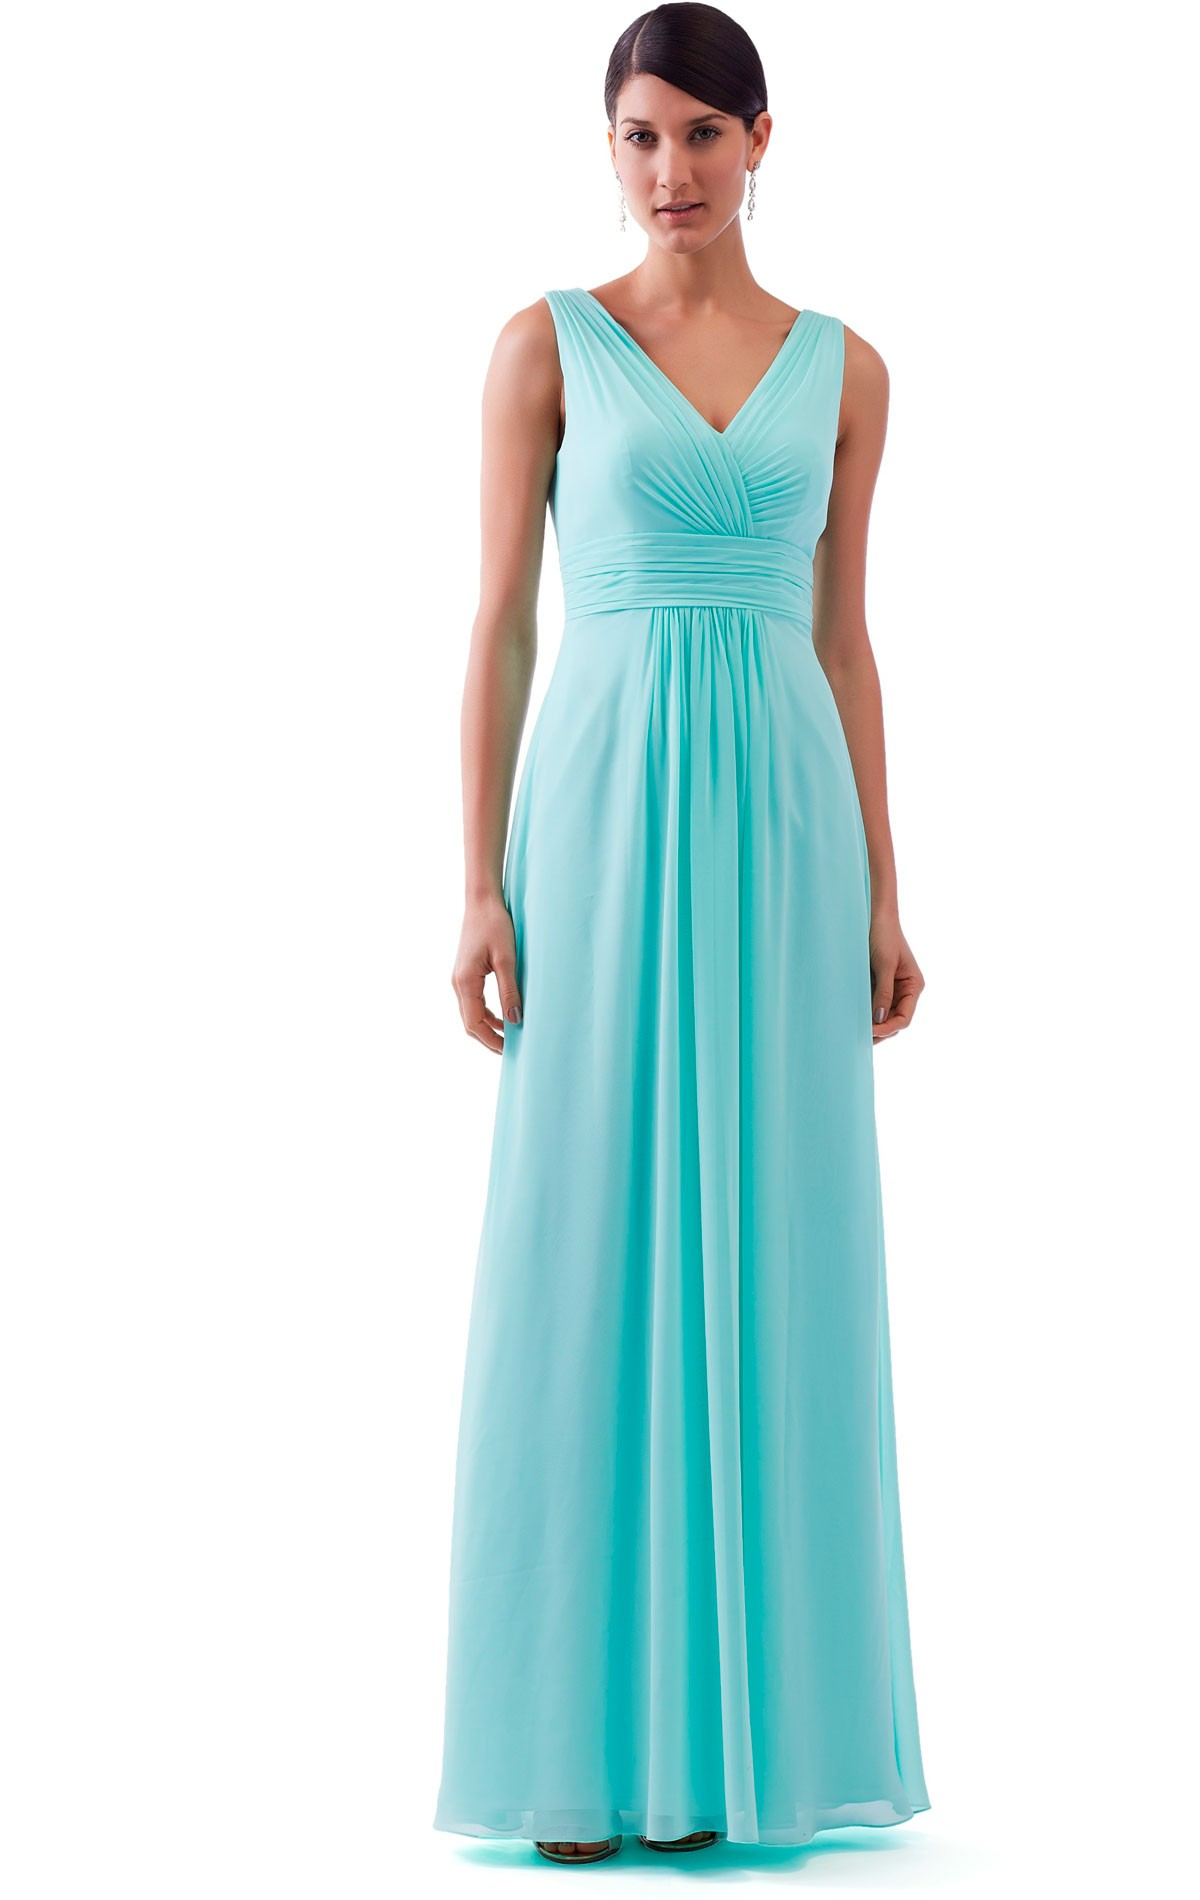 Bridesmaid Dress Venus BM1838 | Blessings of Brighton